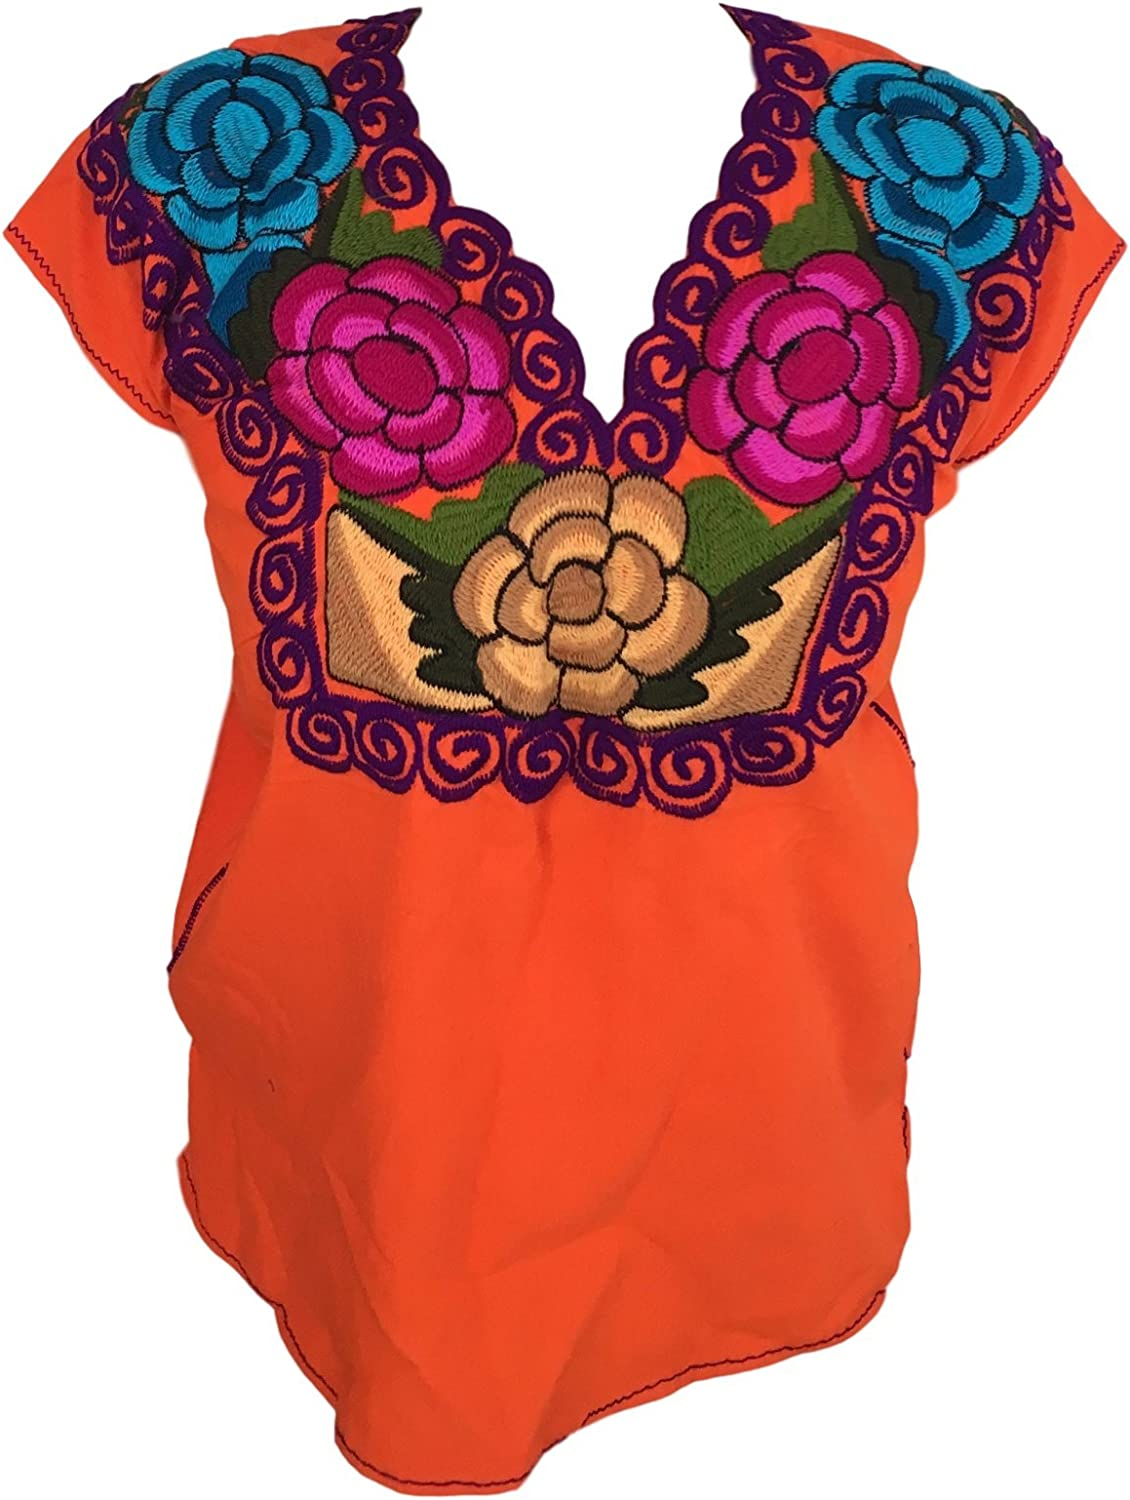 Casa Fiesta Designs Floral Mexican Blouse  Embroidered  Authentic  Handmade  Cotton  Red